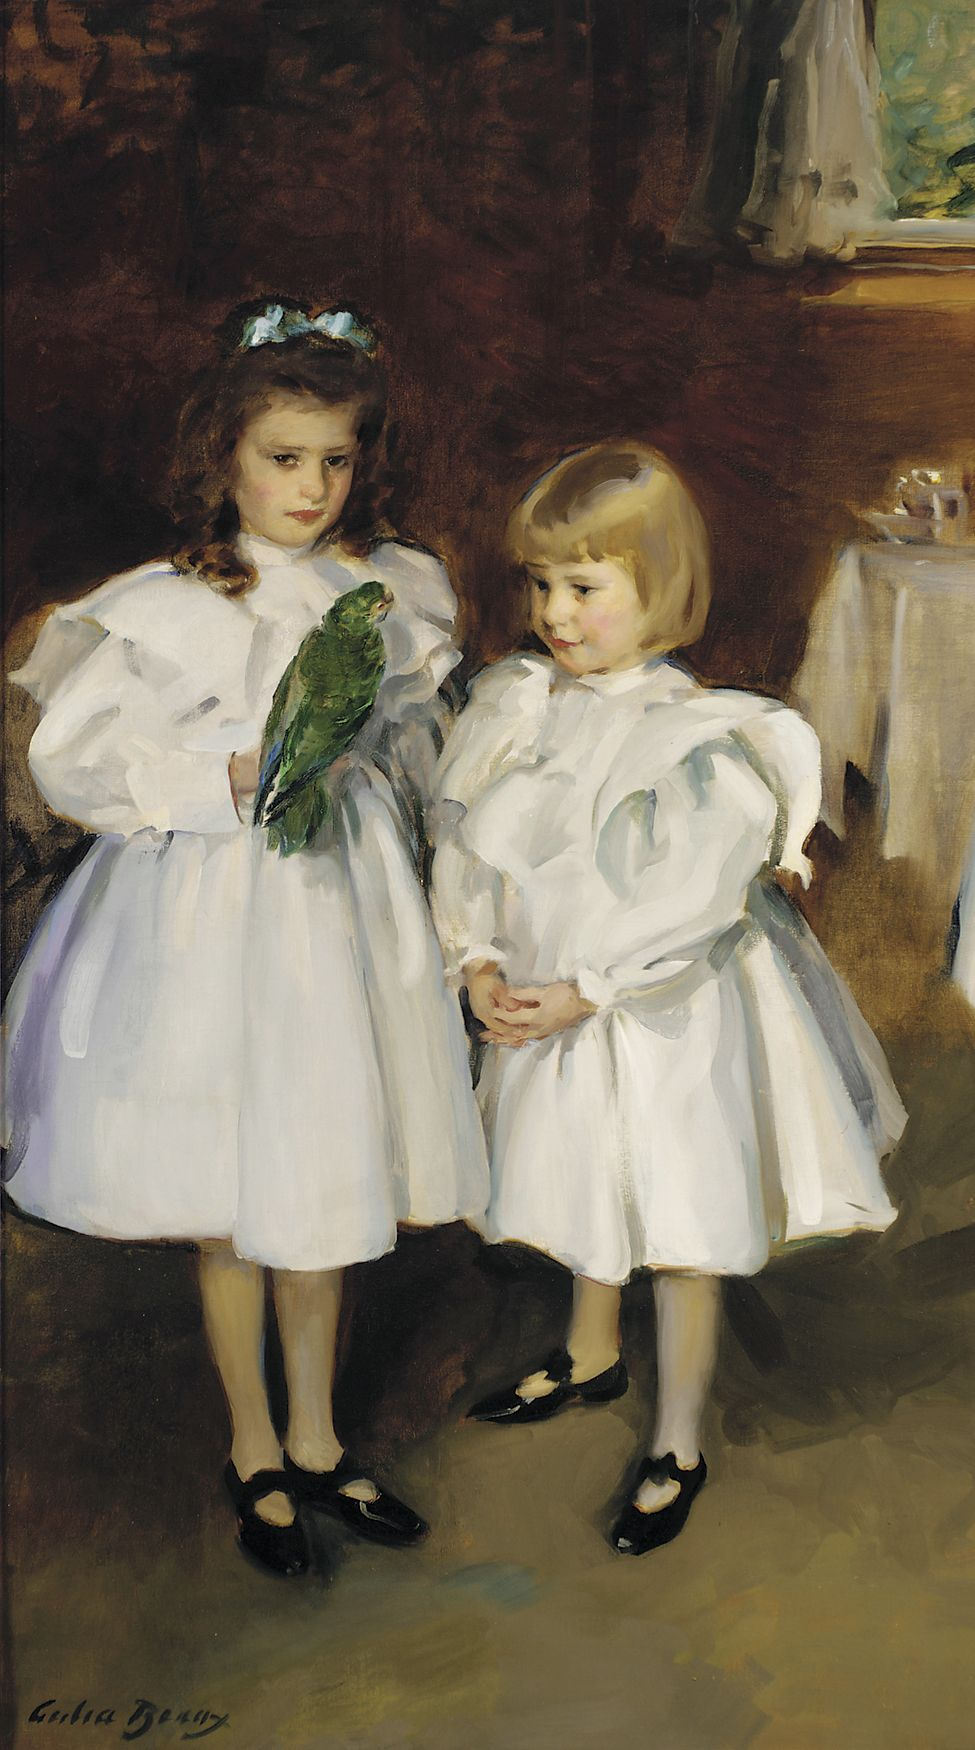 Gertrude and Elizabeth Henry, 1898-1899, Cecilia Beaux. American (1855 - 1942)